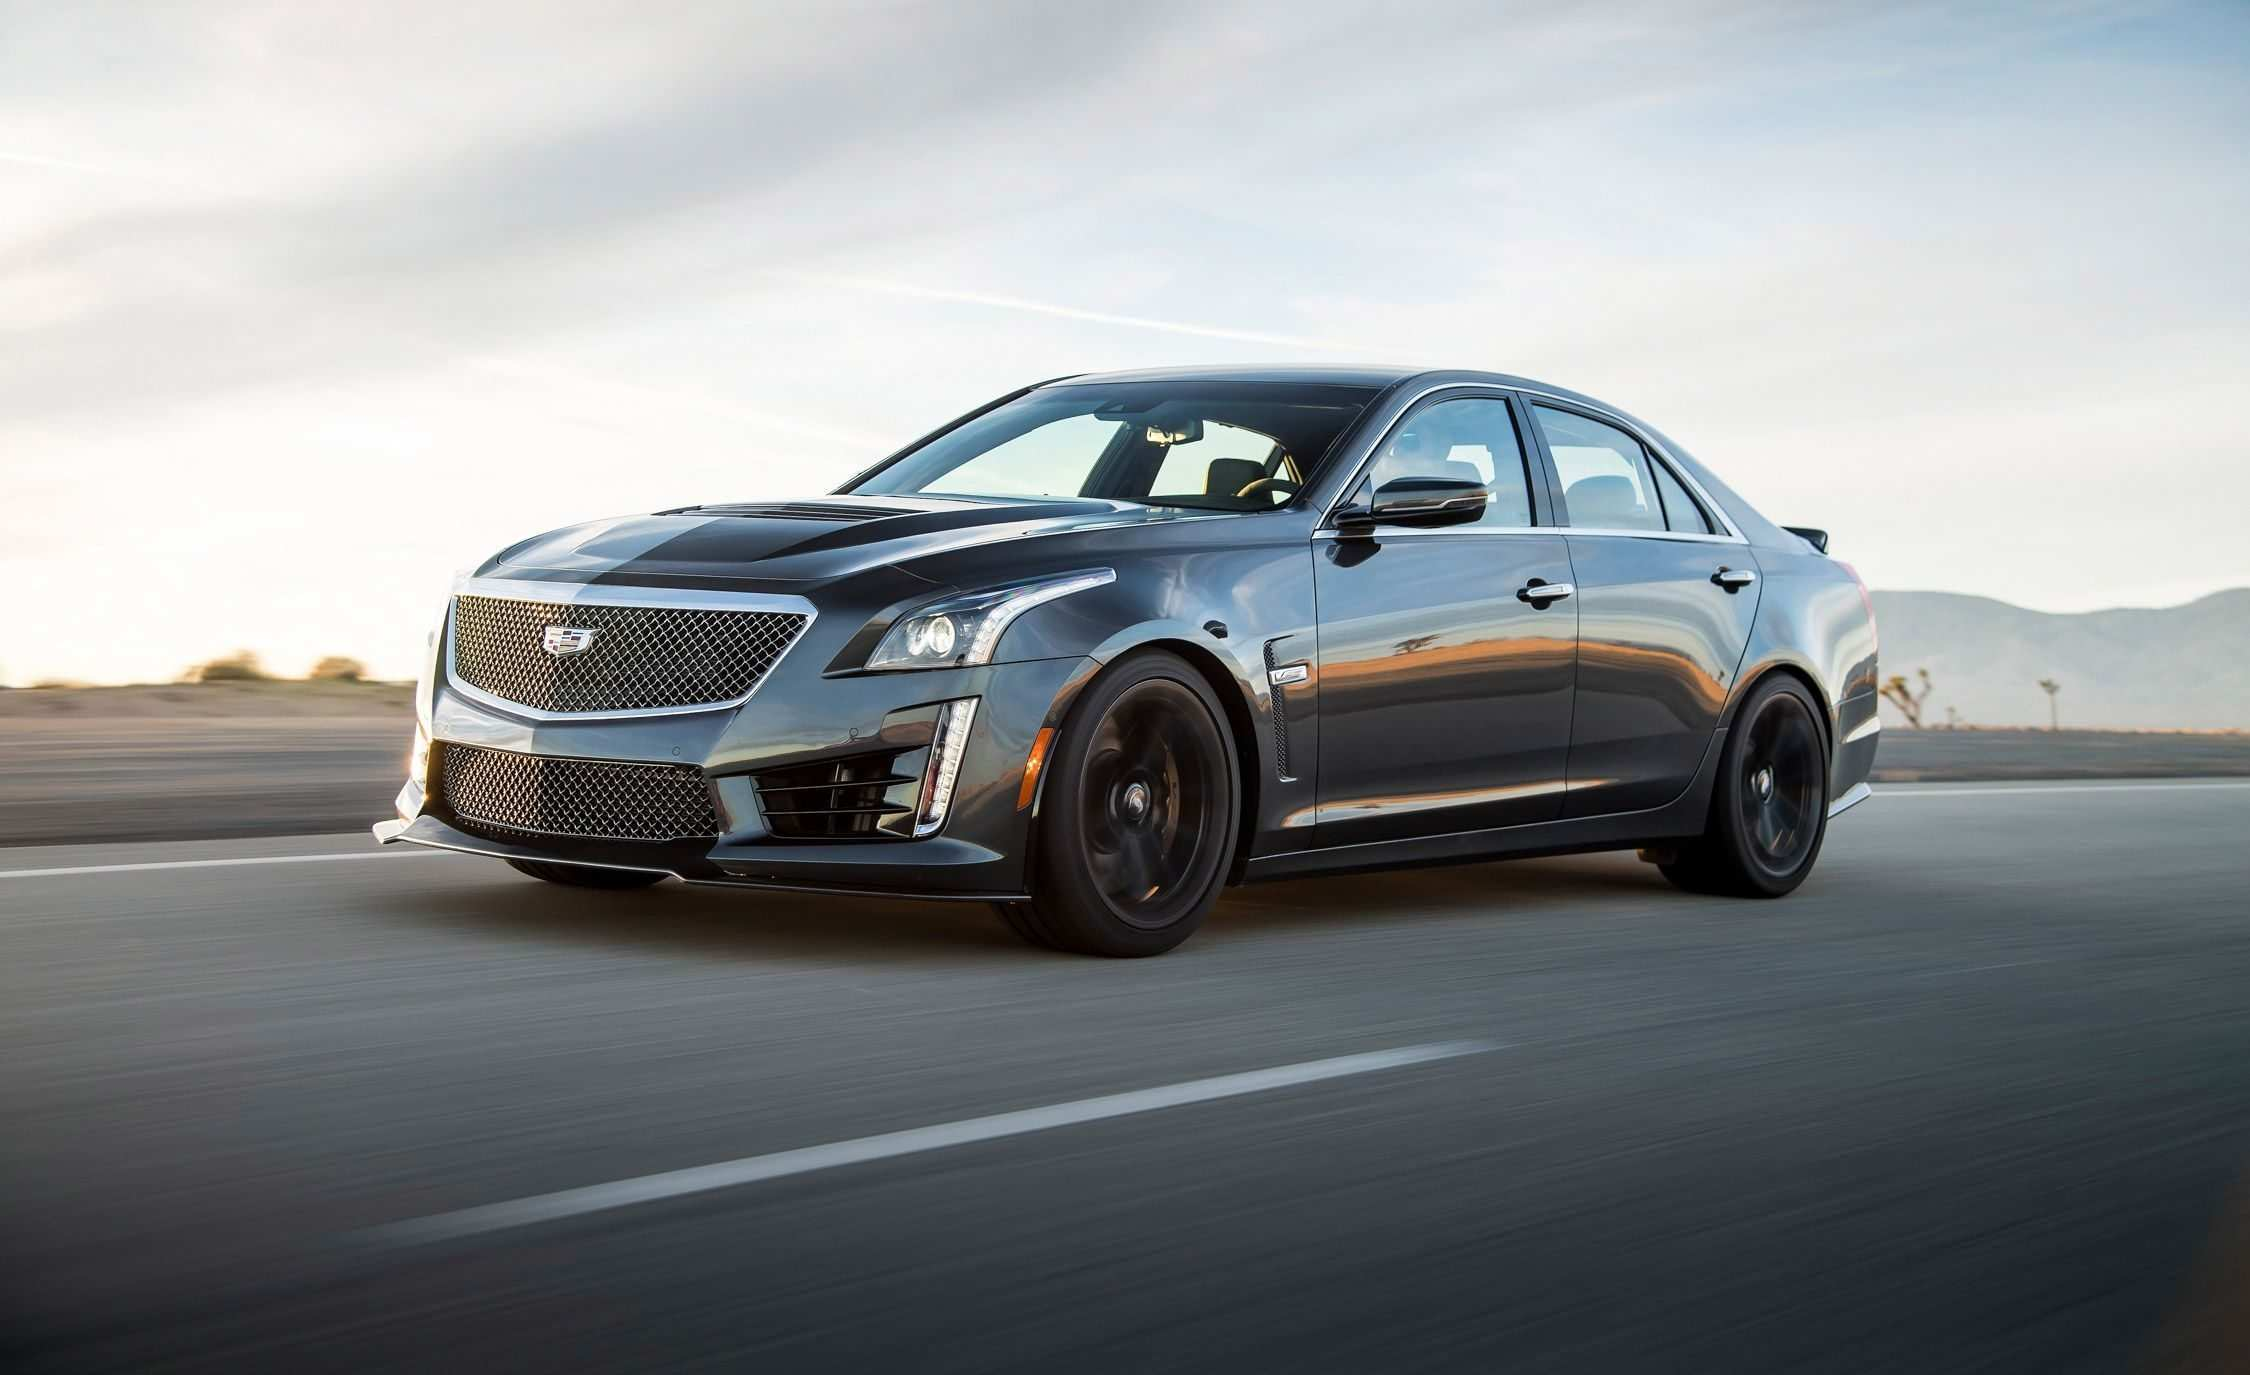 39 All New 2020 Cadillac CTS V Wallpaper